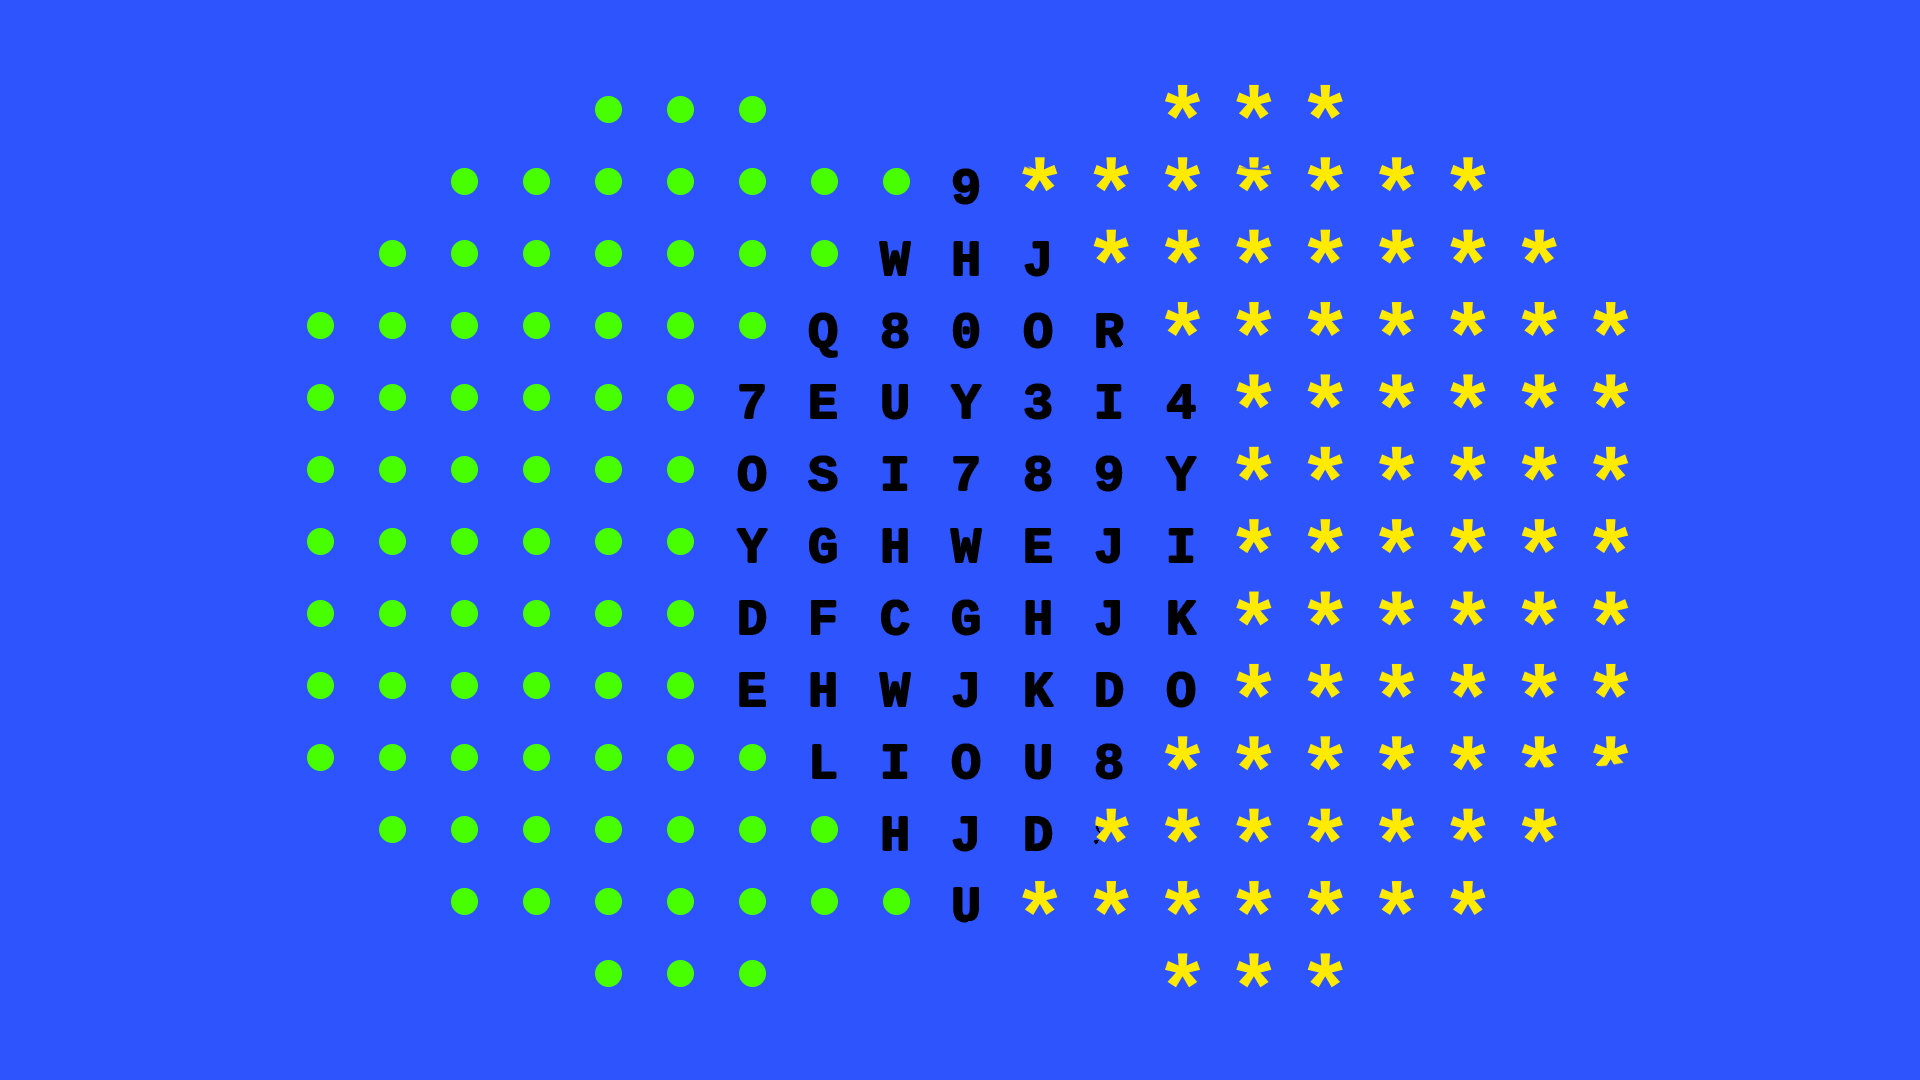 Illustration of encryption as an abstract eye made up of symbols and code